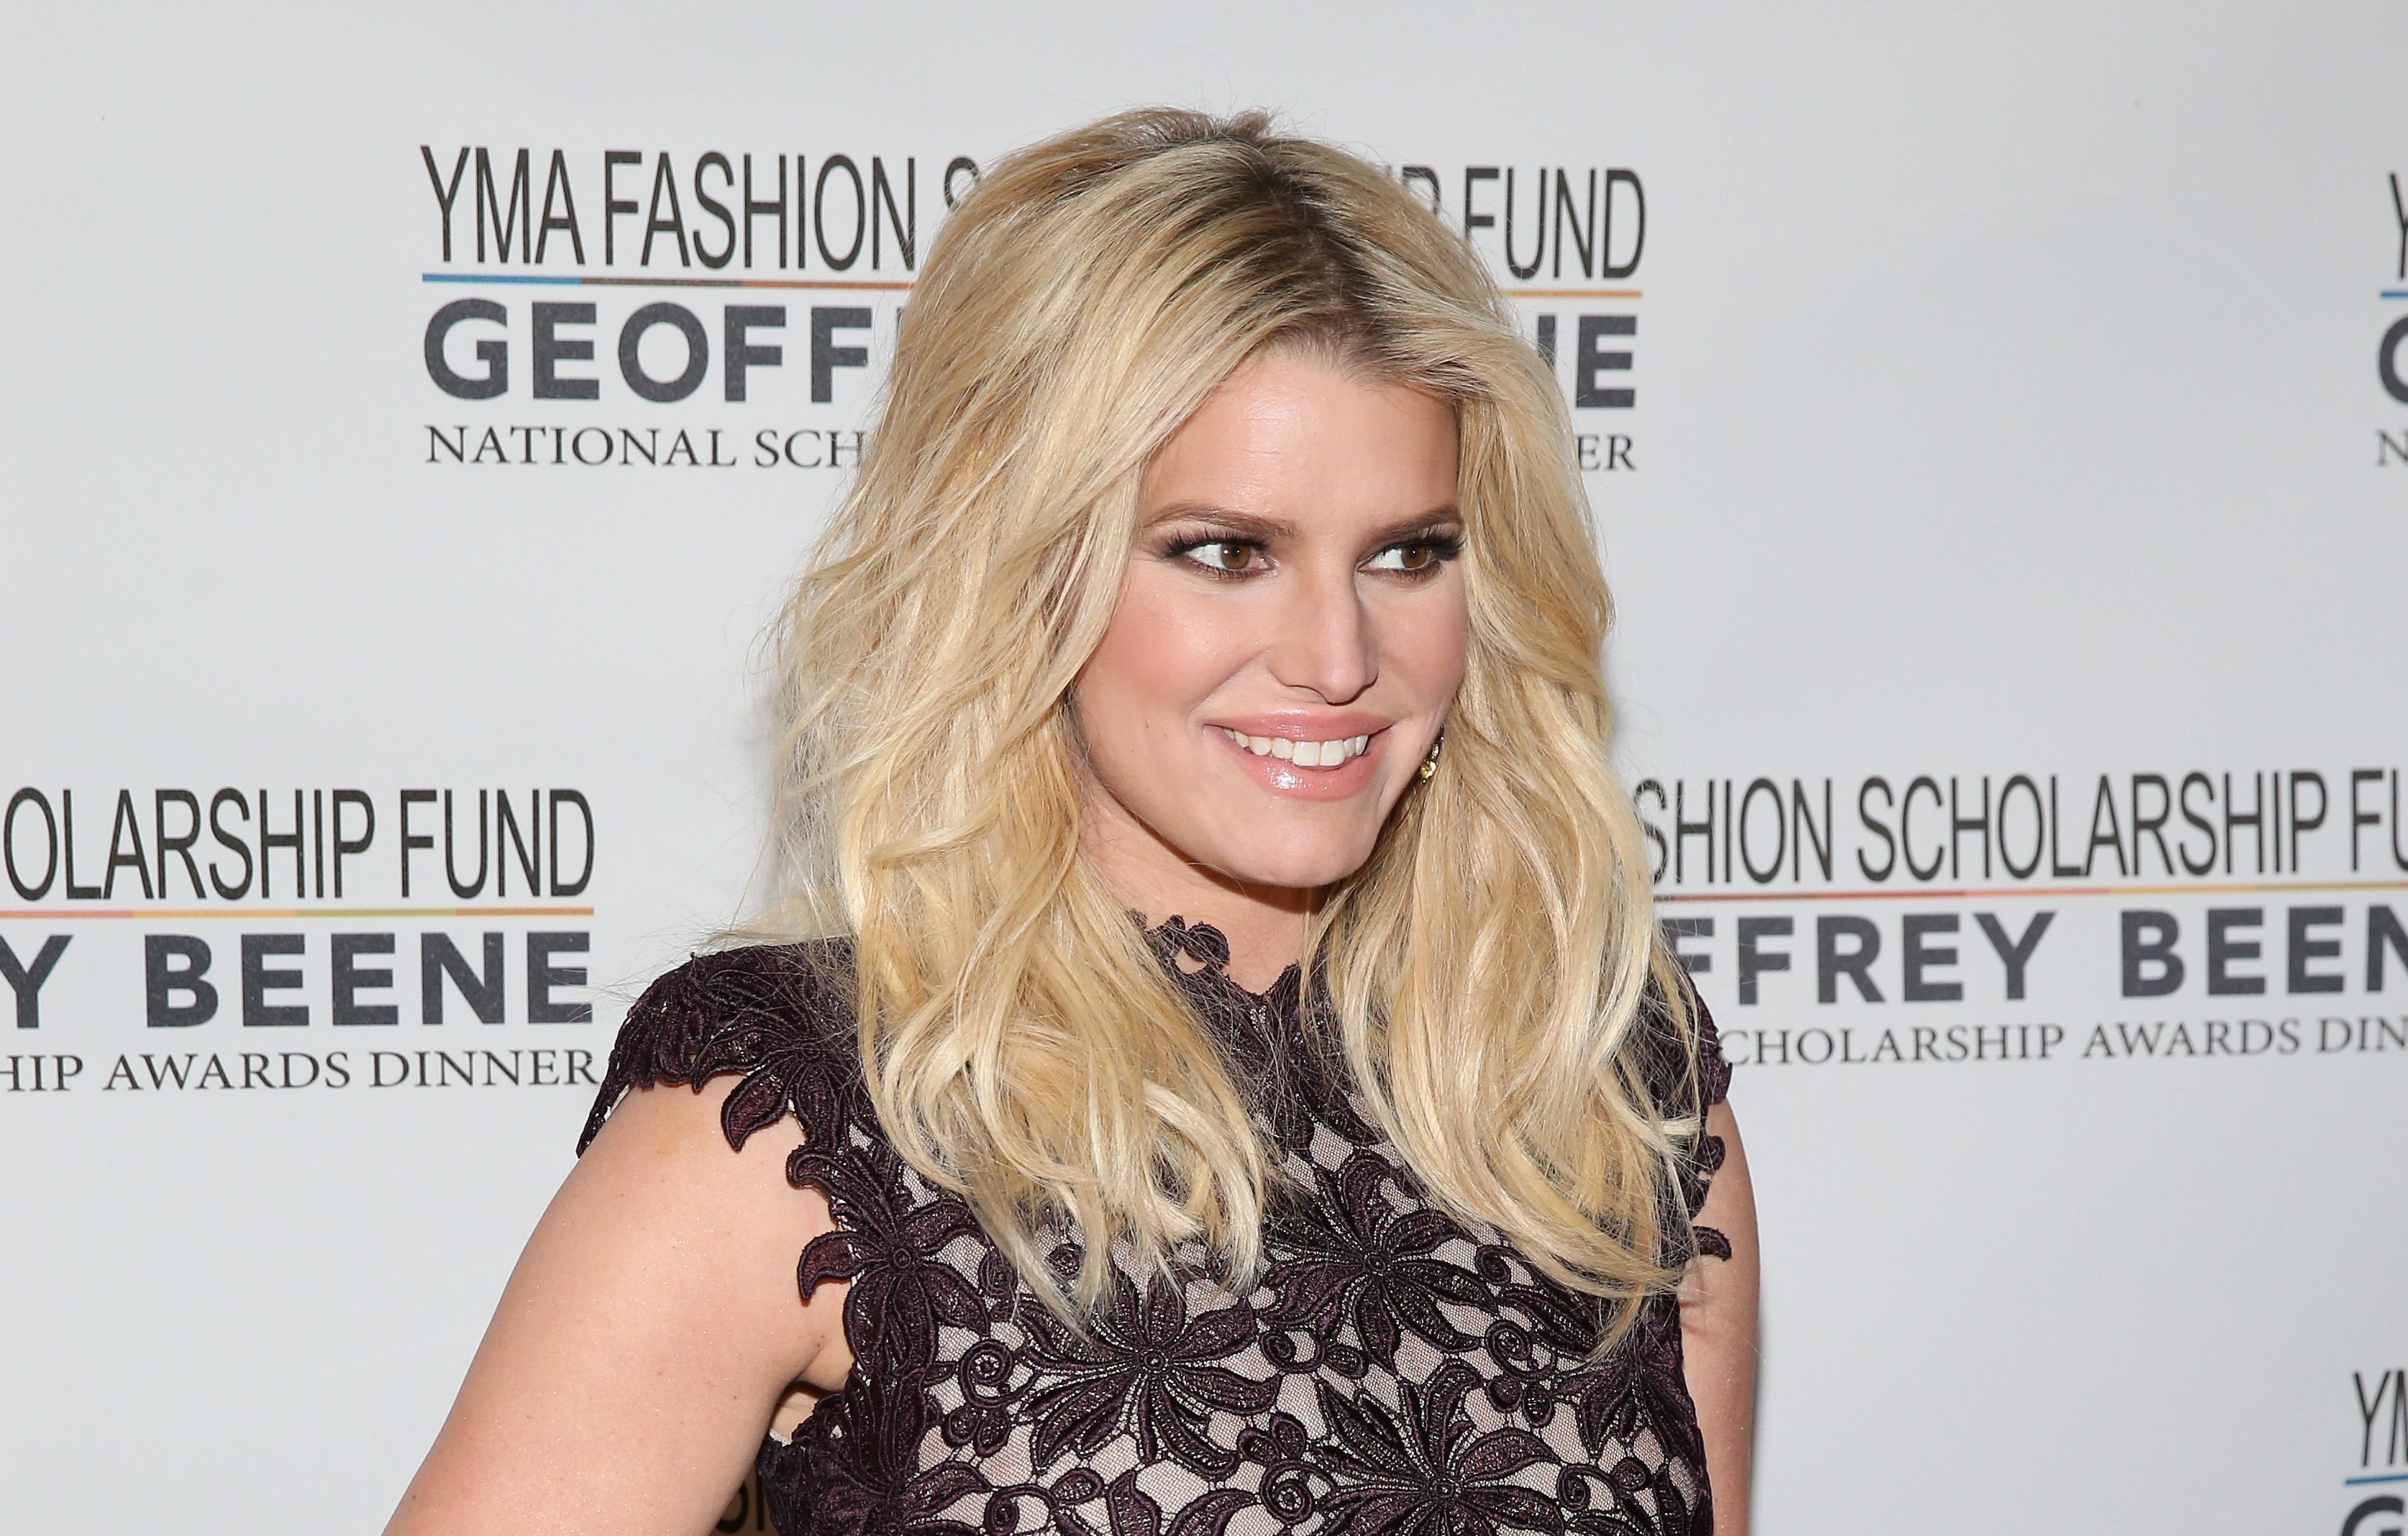 Jessica Simpson at YMA Fashion Scholarship Fund Geoffrey Beene National Scholarship Awards Gala at Marriott Marquis Hotel on January 12, 2016 | Photo: Getty Images